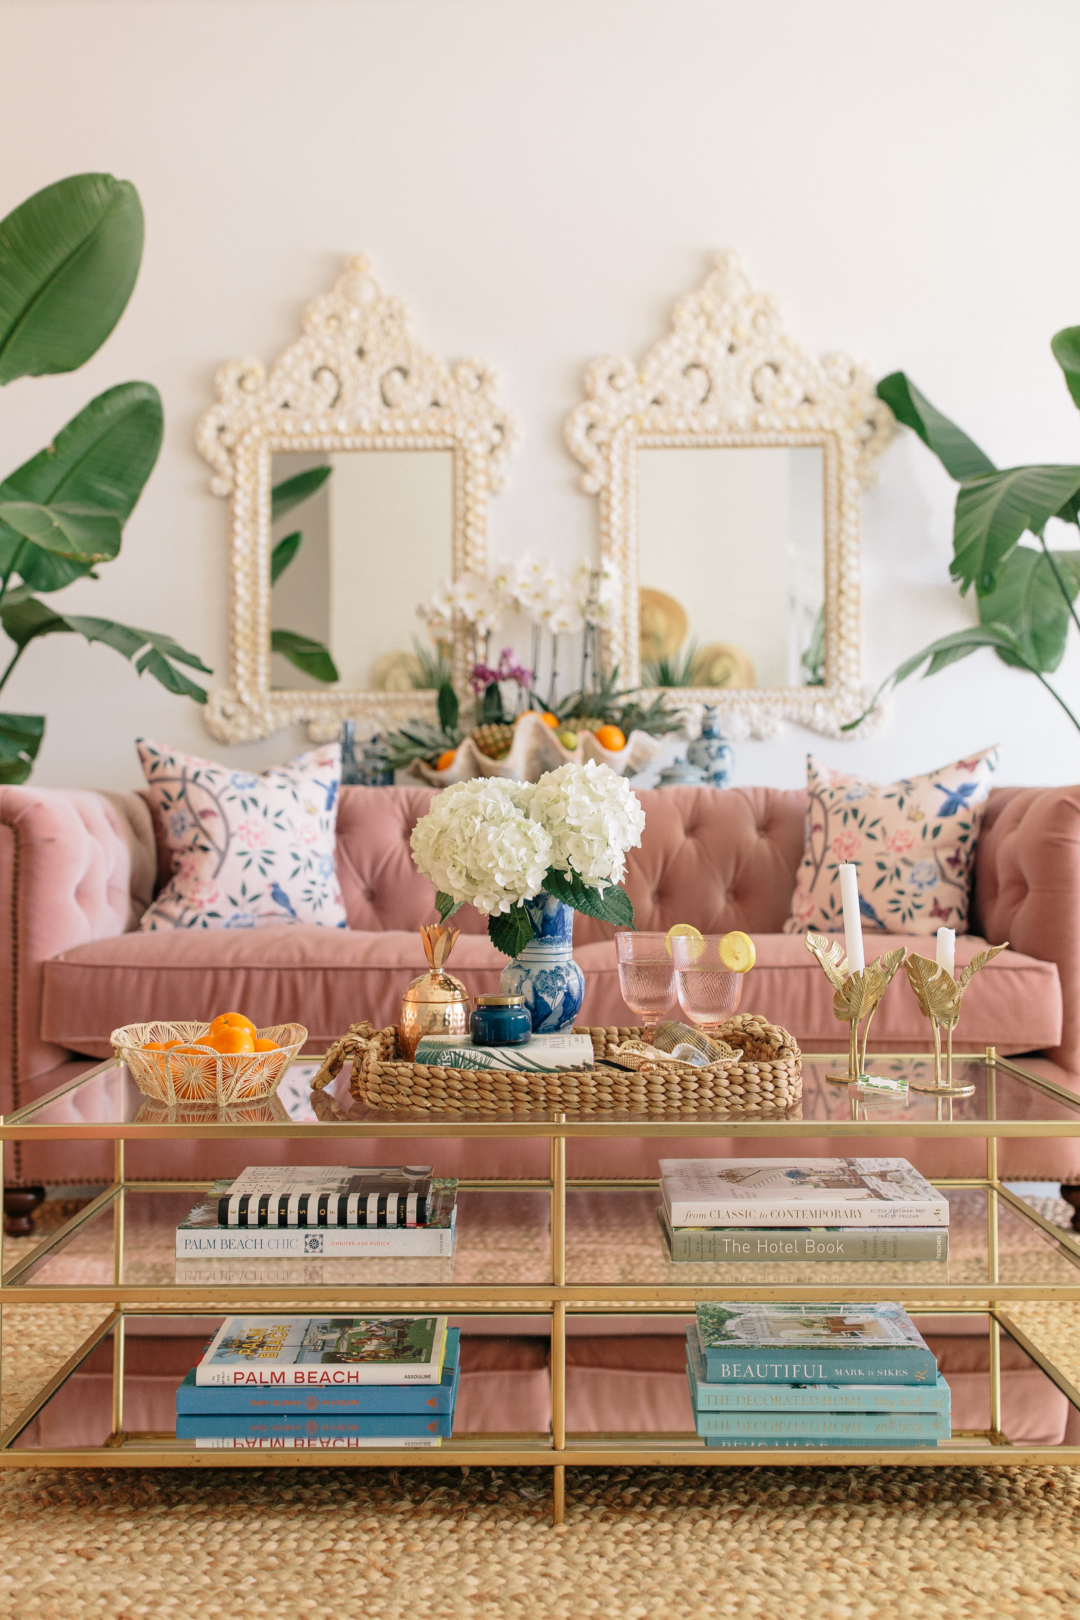 Home: Danielle from Palm Beach Lately's Living Room